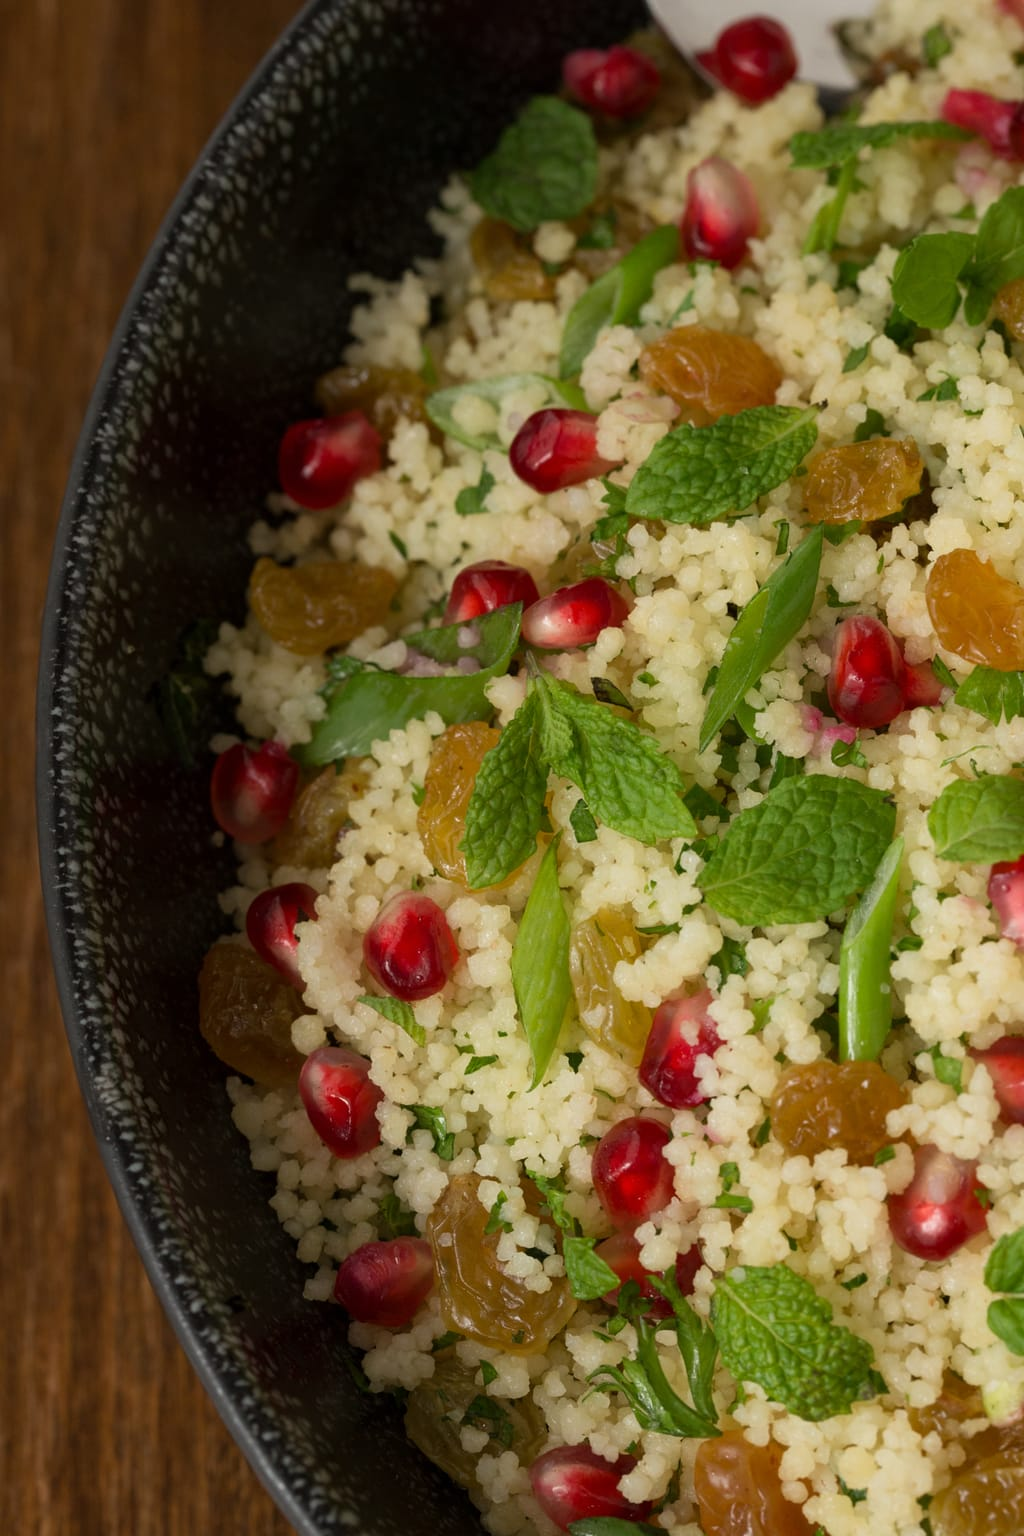 Pomegranate Parsley Couscous Salad - This colorful and delicious salad is super easy to prepare; it's the perfect healthy side dish for everyday or special occasions! thecafesucrefarine.com